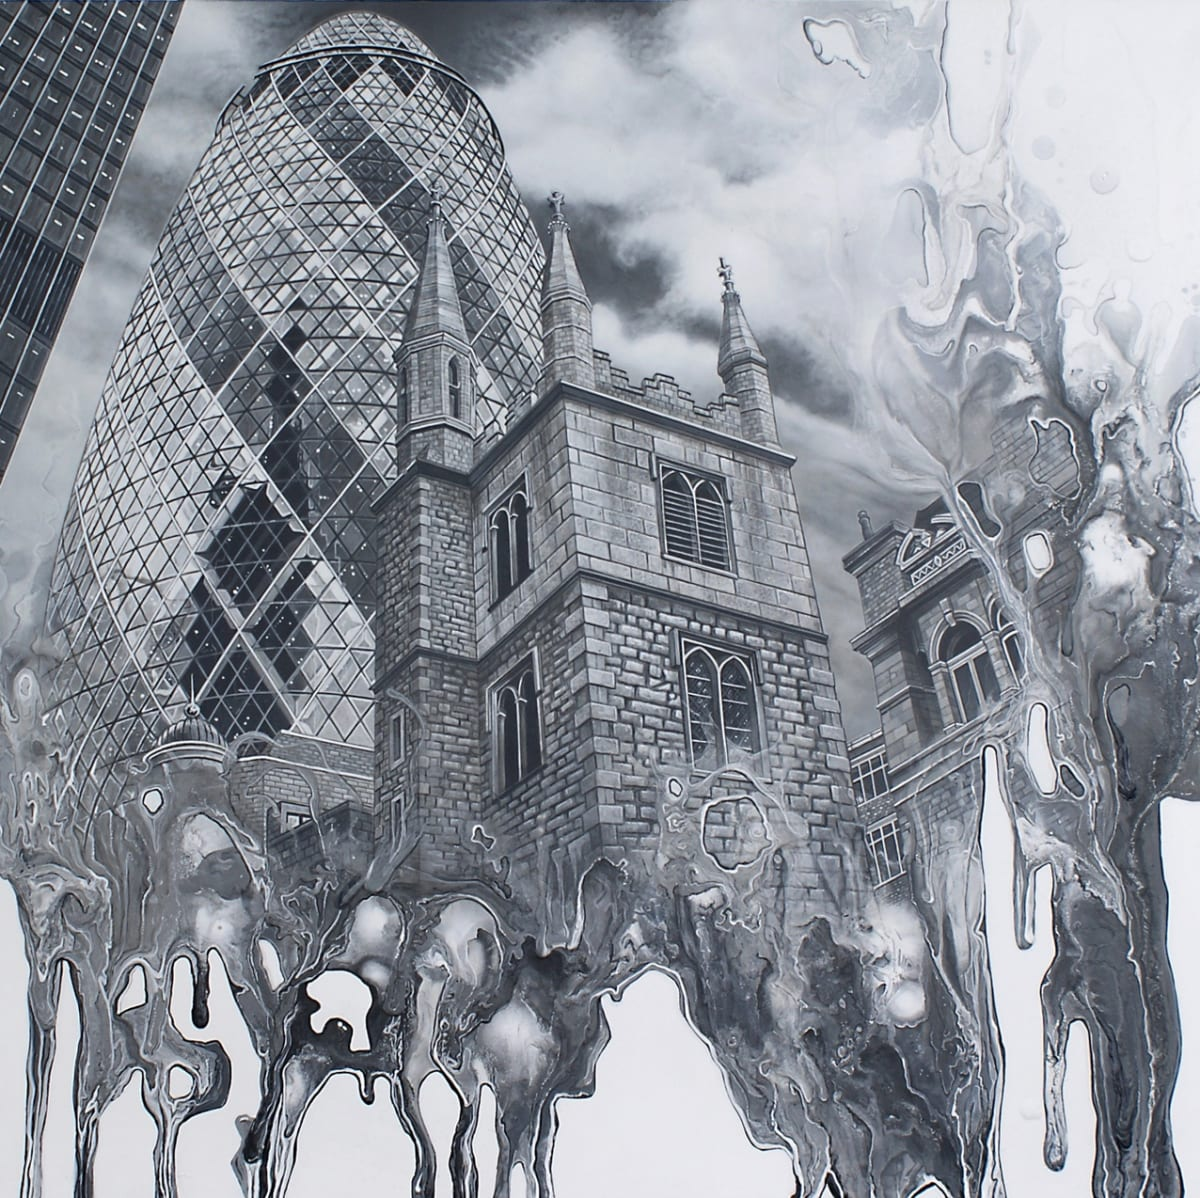 Simon Hennessey Lost Souls of the City Acrylic on panel 65 x 65 cm